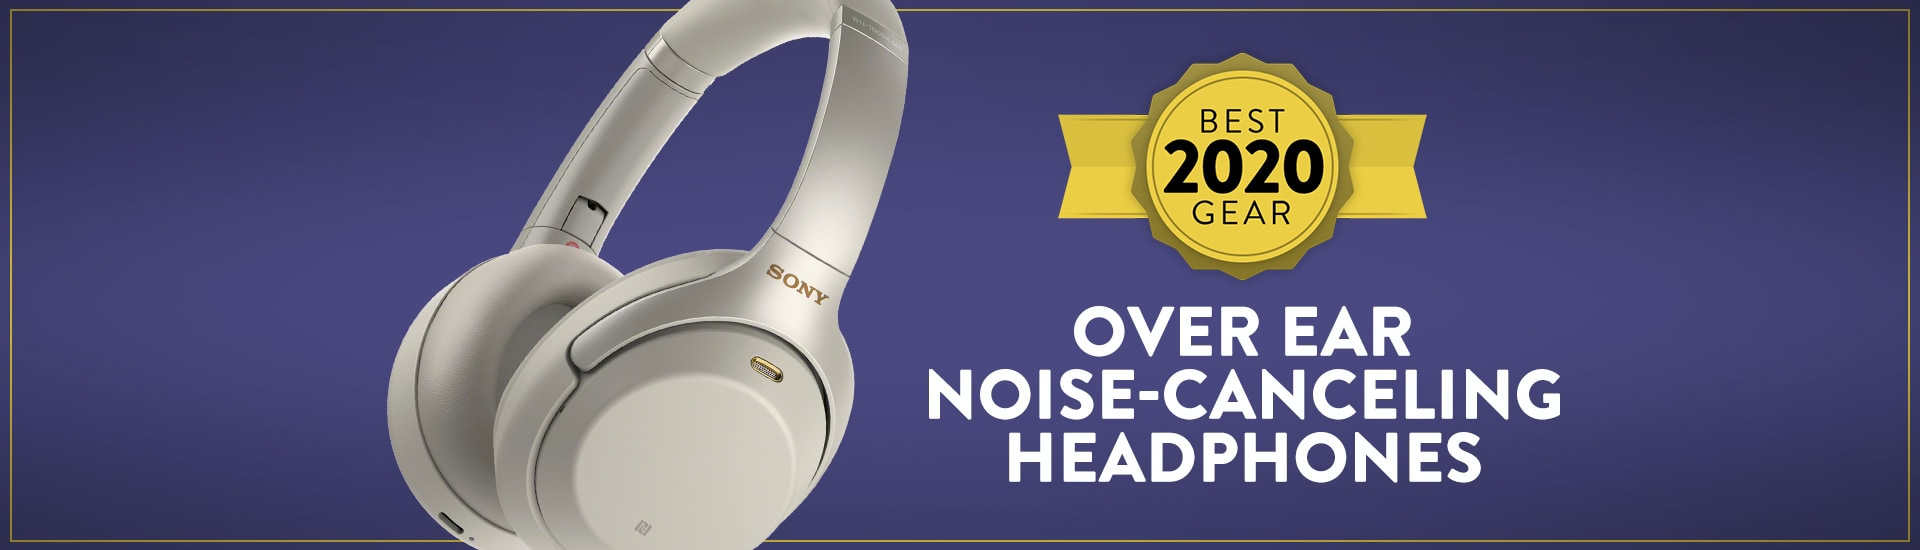 20191205 2020 best over ear noise canceling headphones blog header